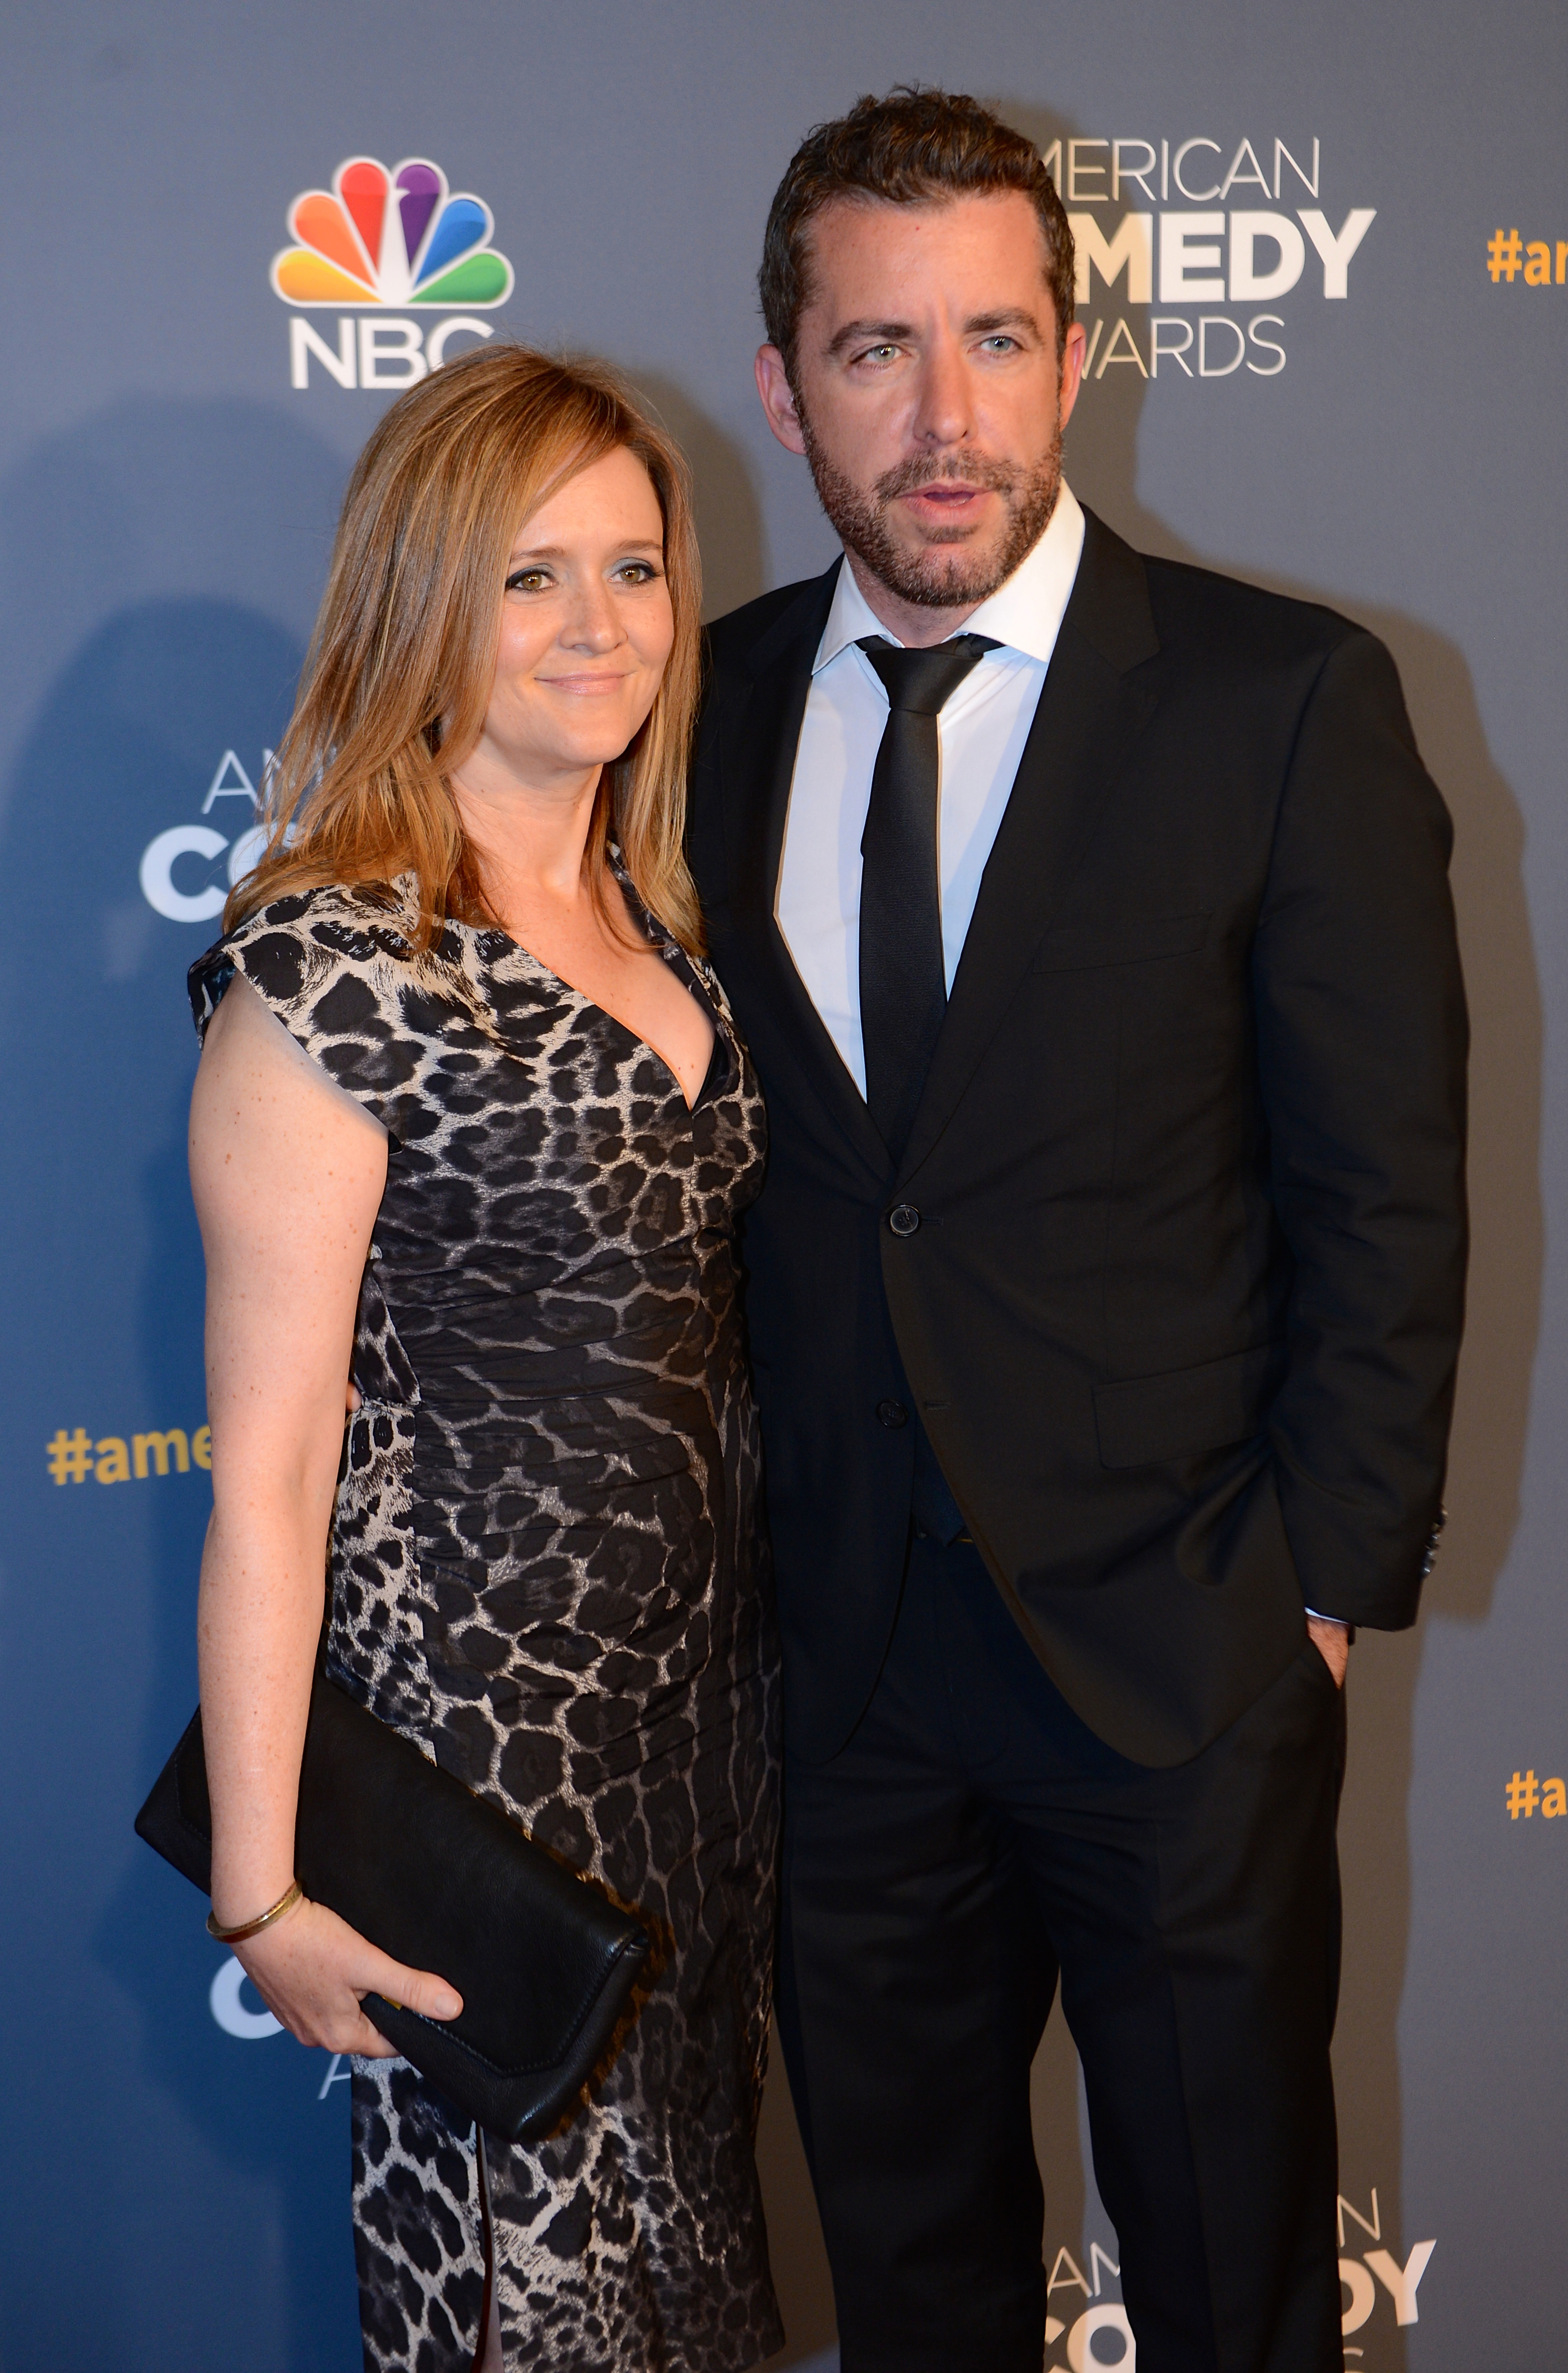 Samantha Bee and Jason Jones attend 2014 American Comedy Awards at Hammerstein Ballroom in New York City on April 26, 2014.